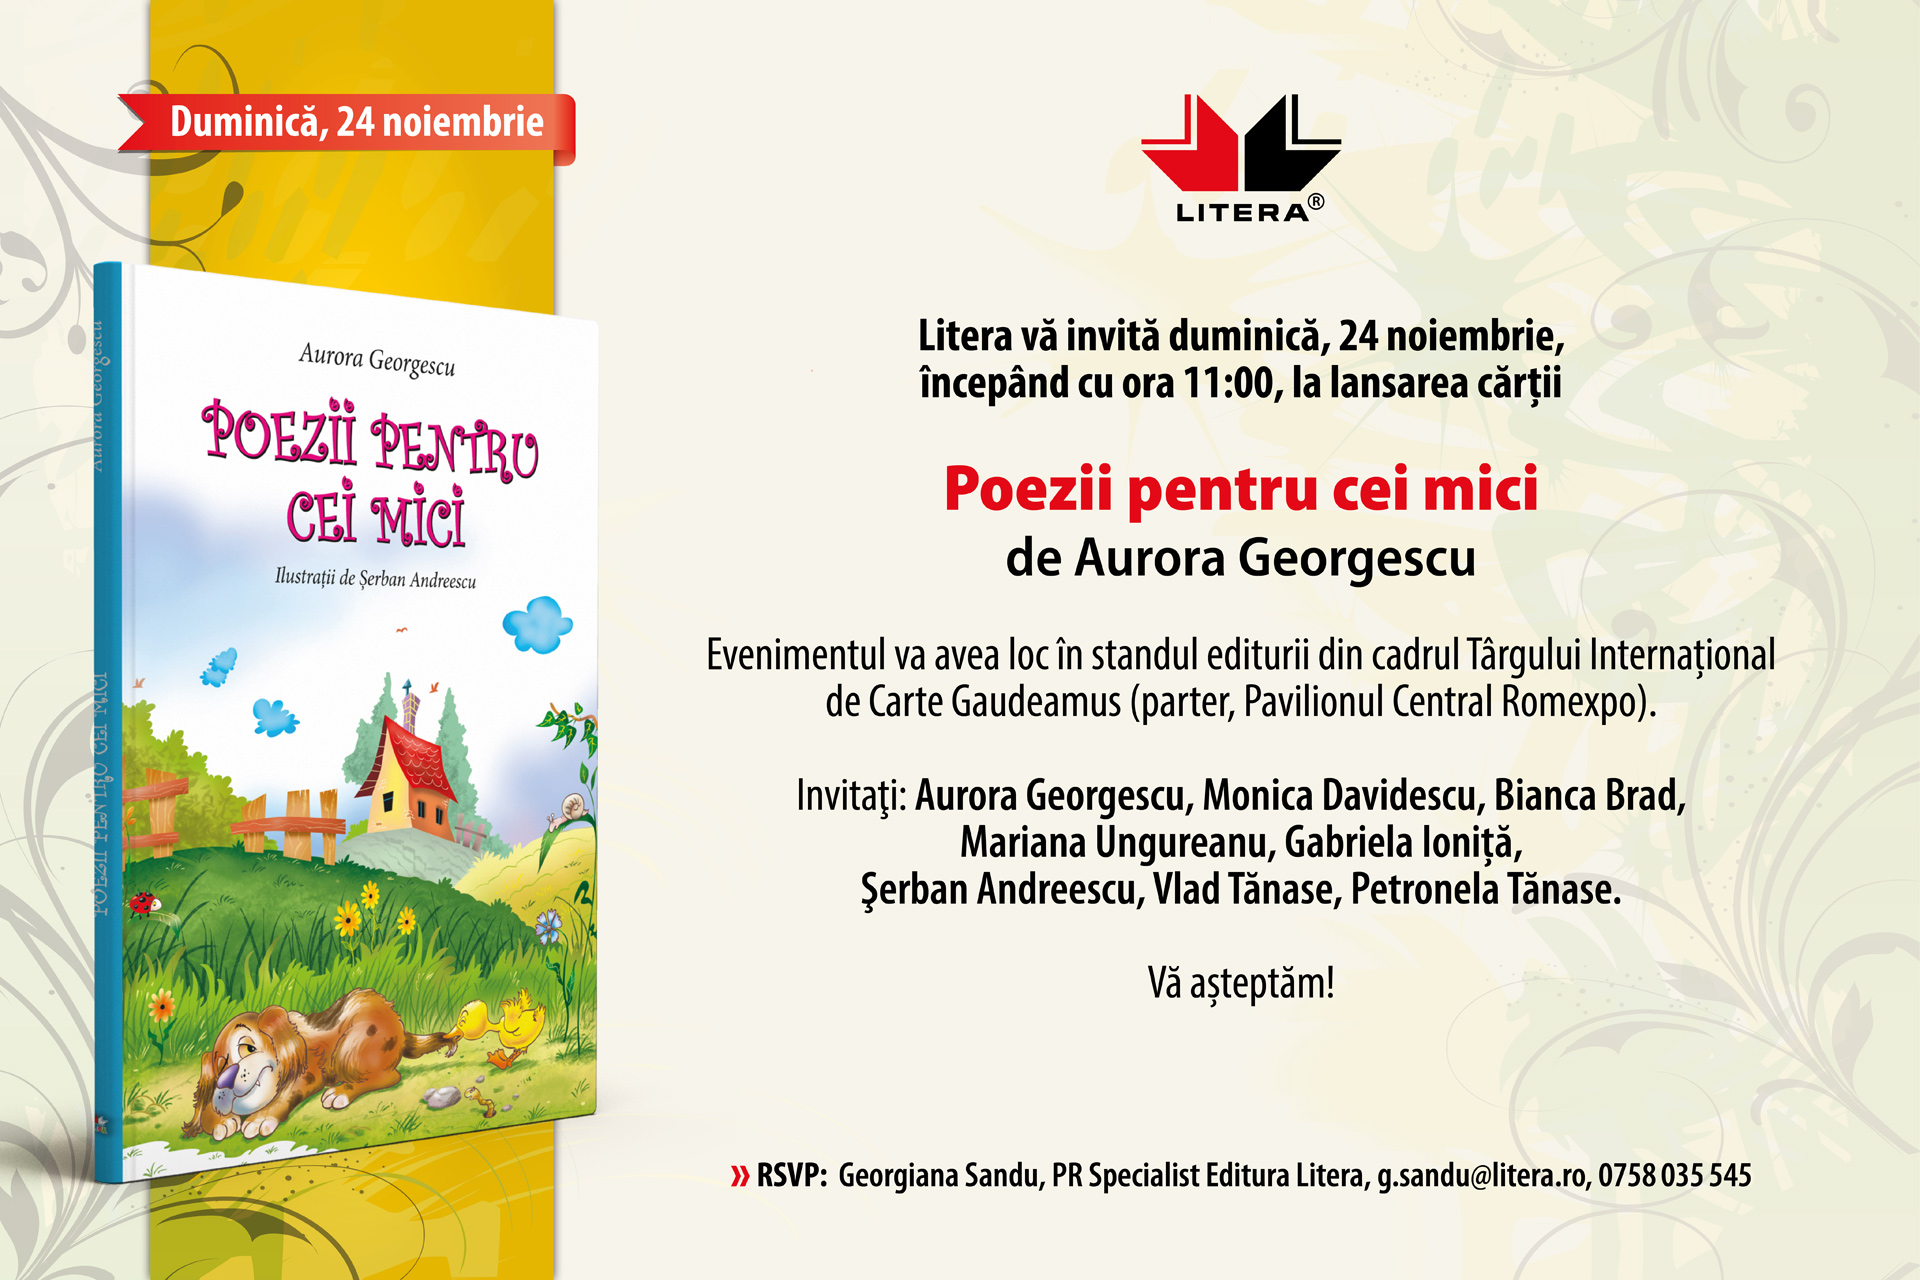 invitatii_litera_gaudeamus2013-poezii-rsvp